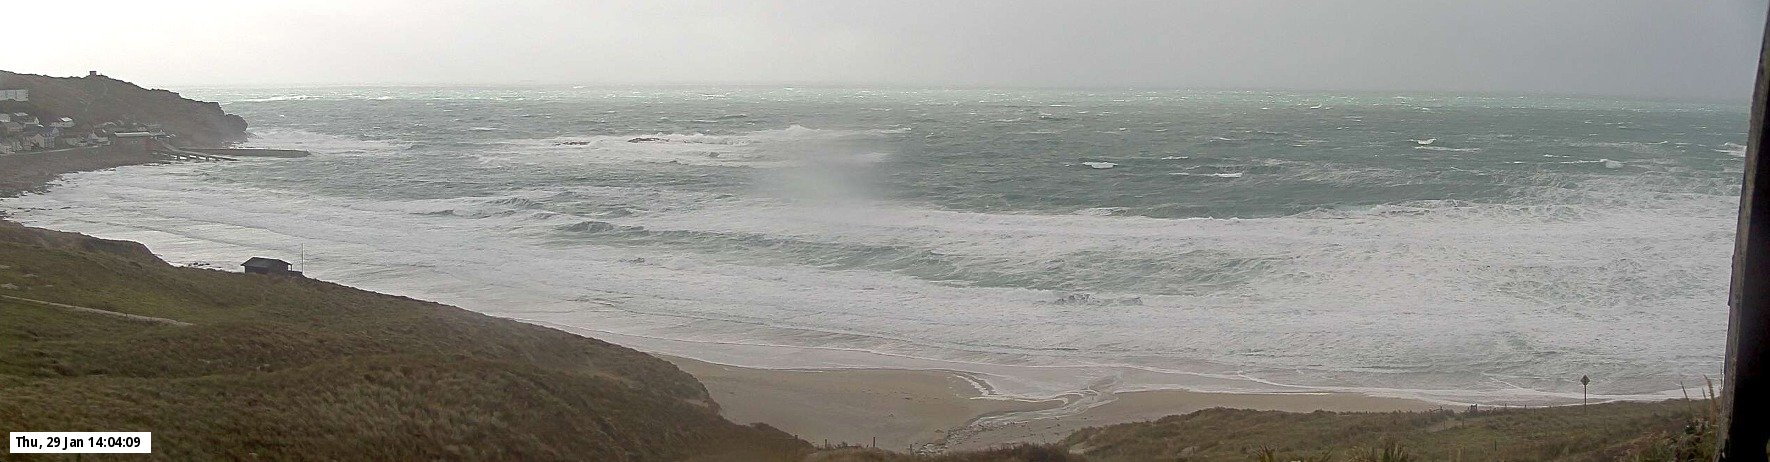 Latest webcam still for Sennen